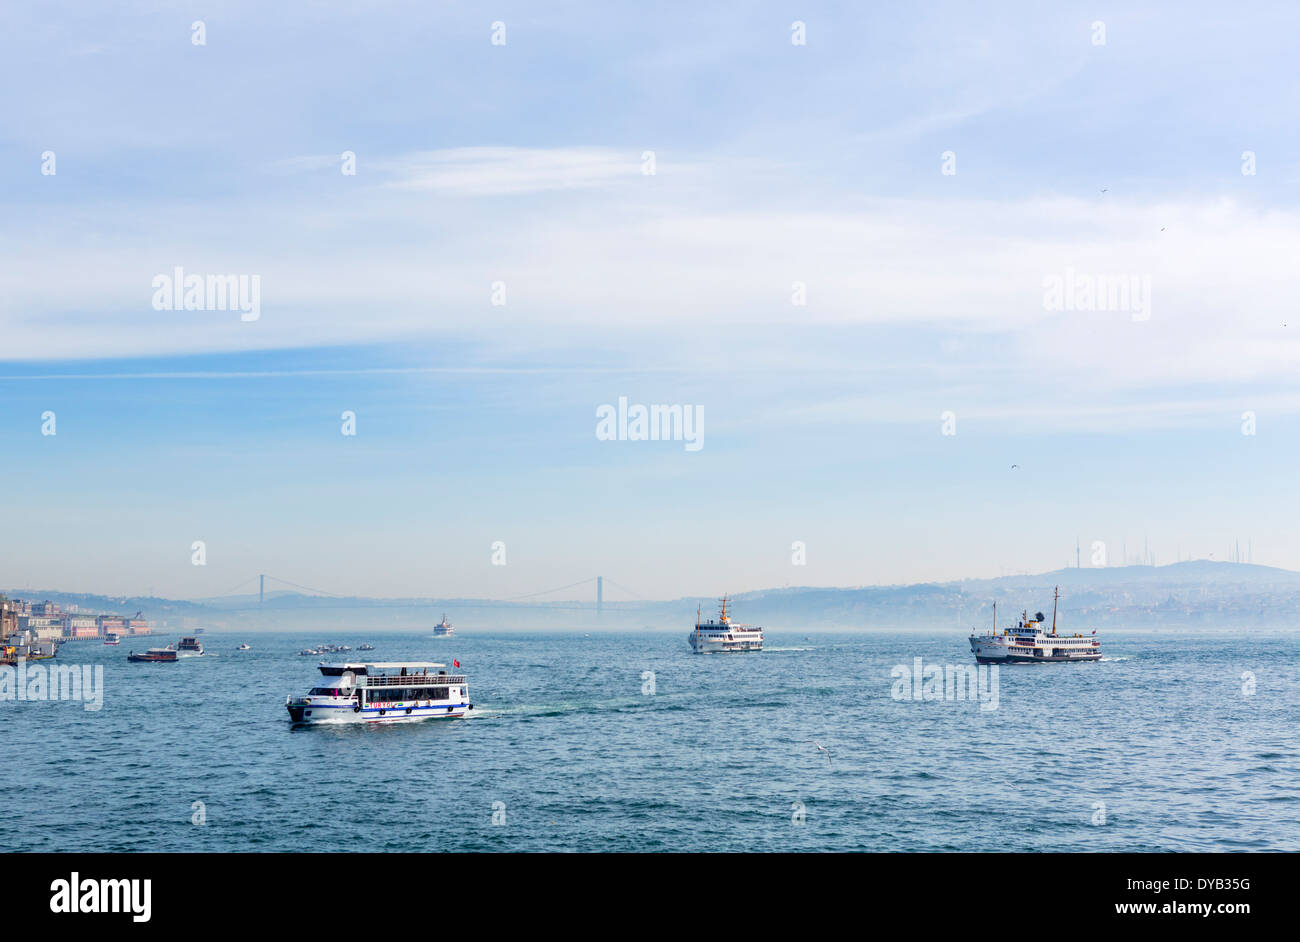 View of local ferries and tour boats on the Golden Horn looking towards the Bosphorus Bridge, Istanbul, Turkey - Stock Image